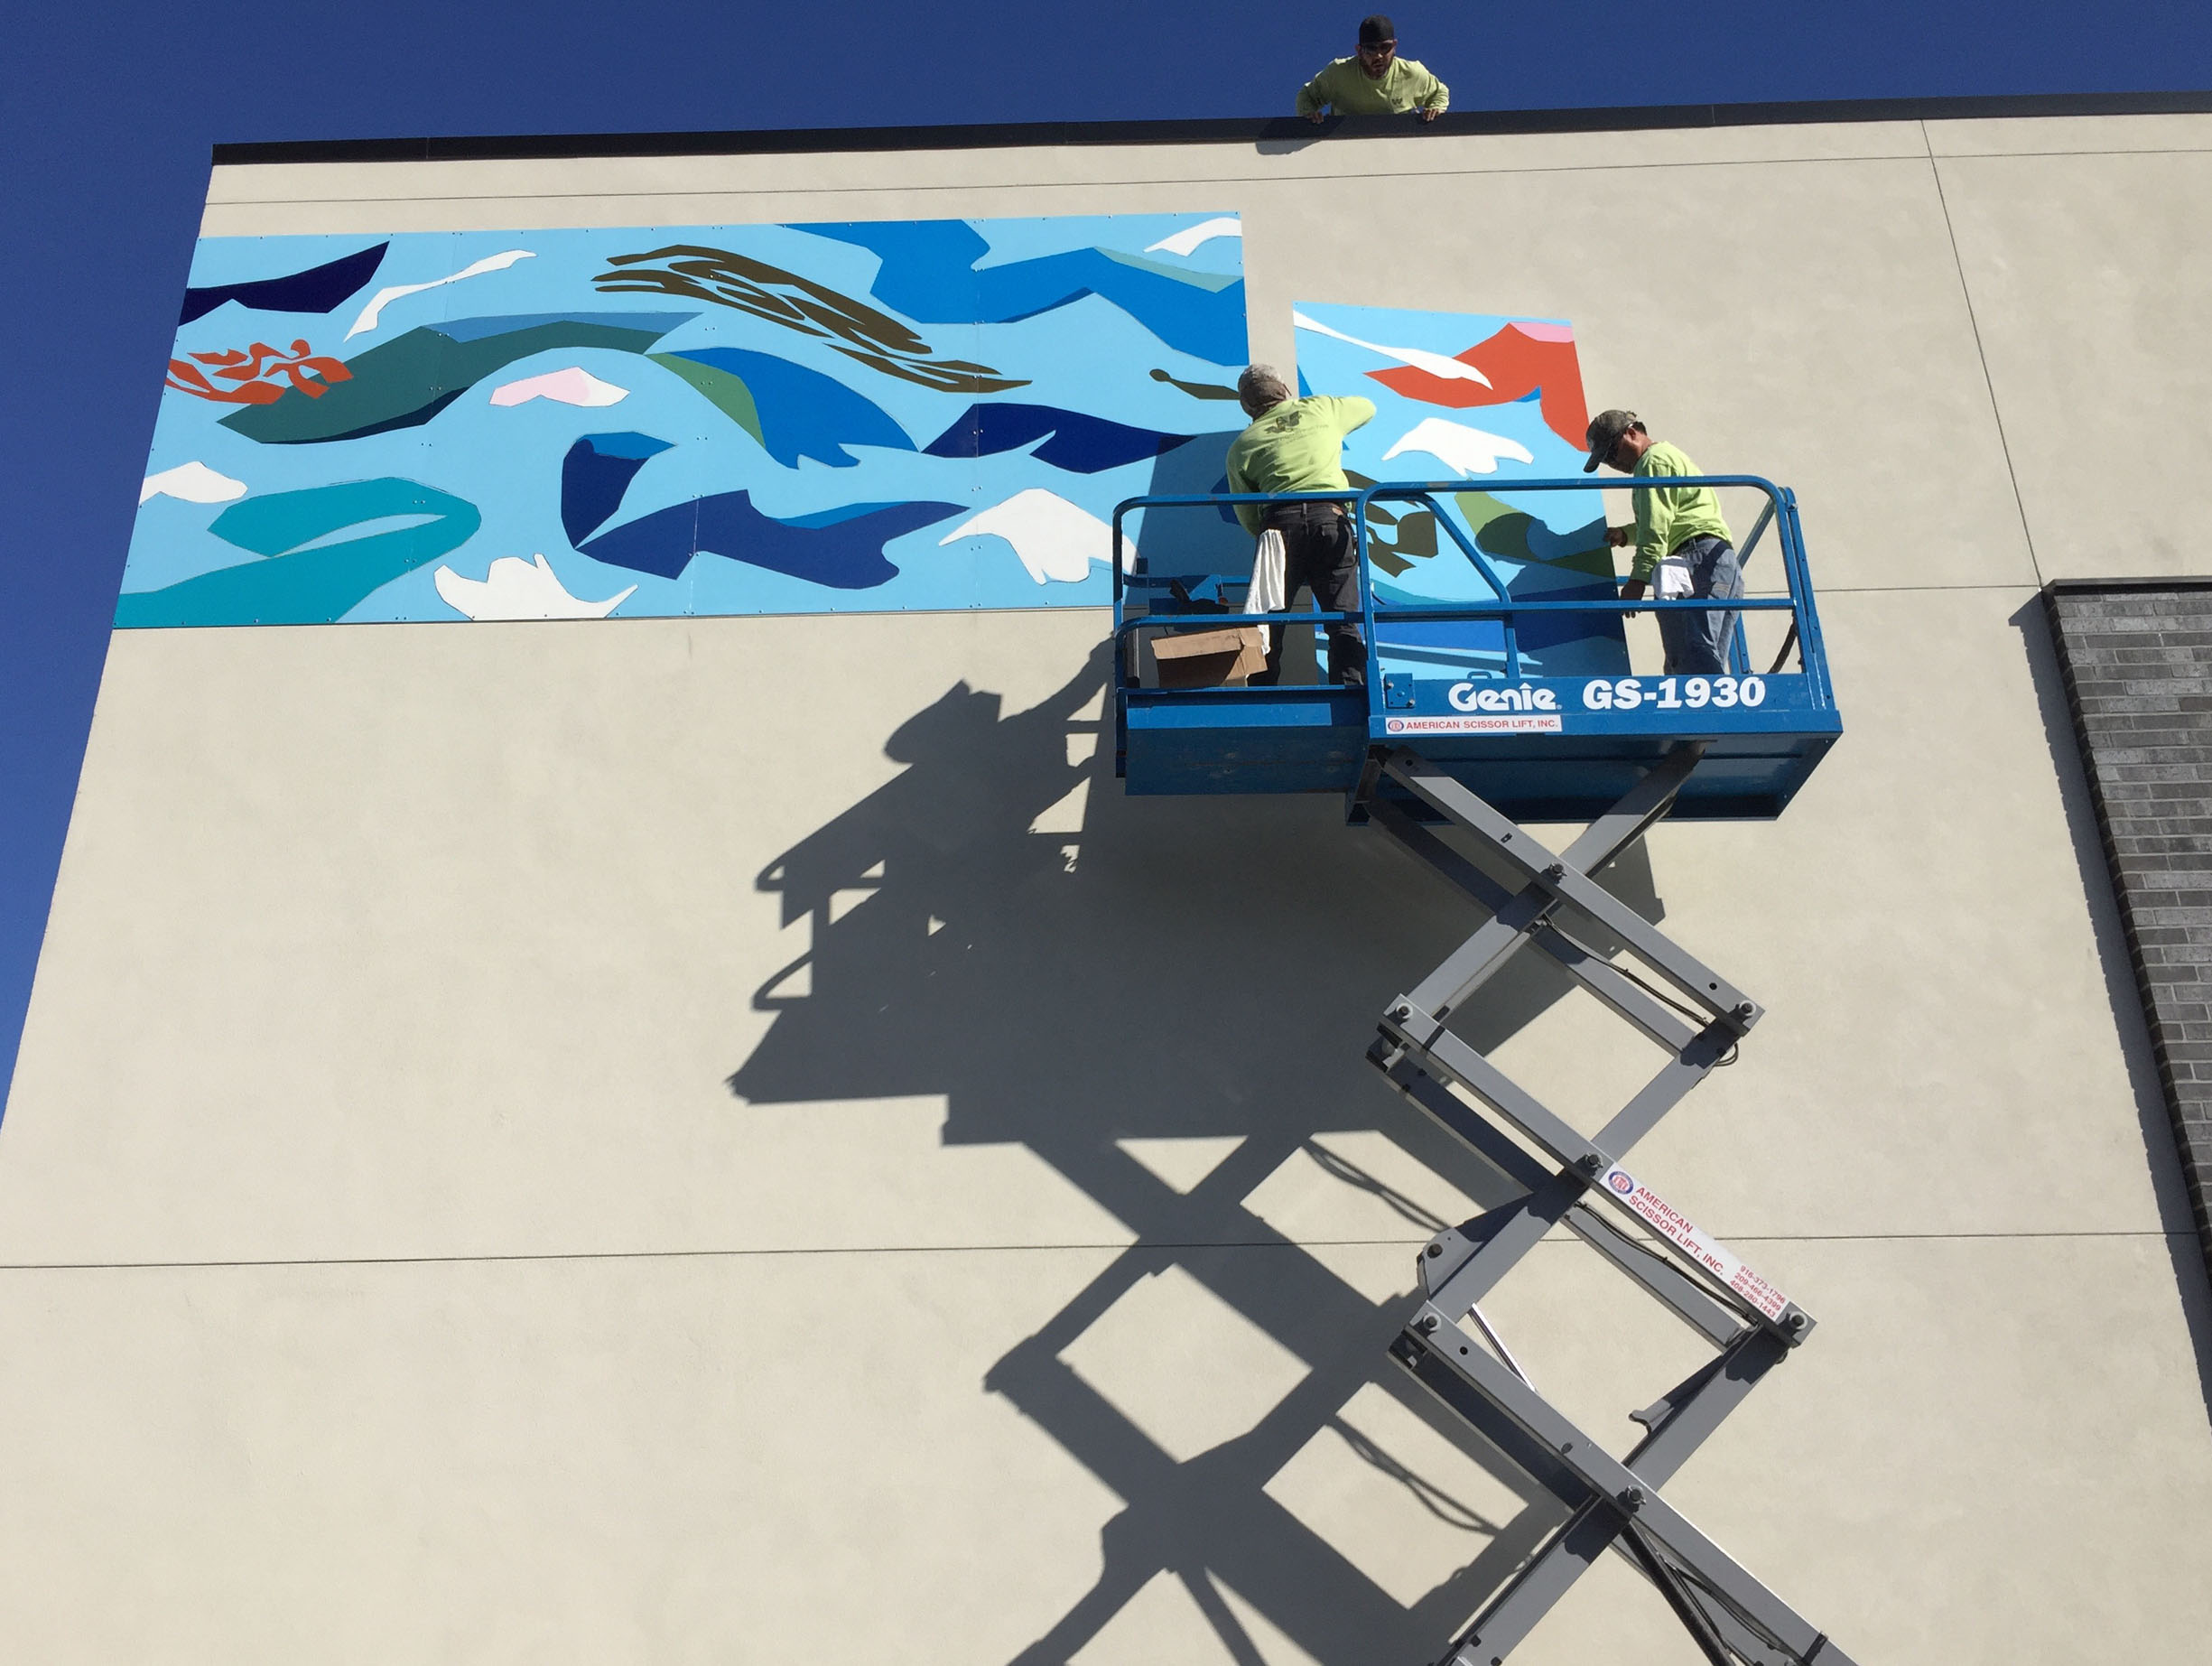 Installing the mural, August 31st, 2017